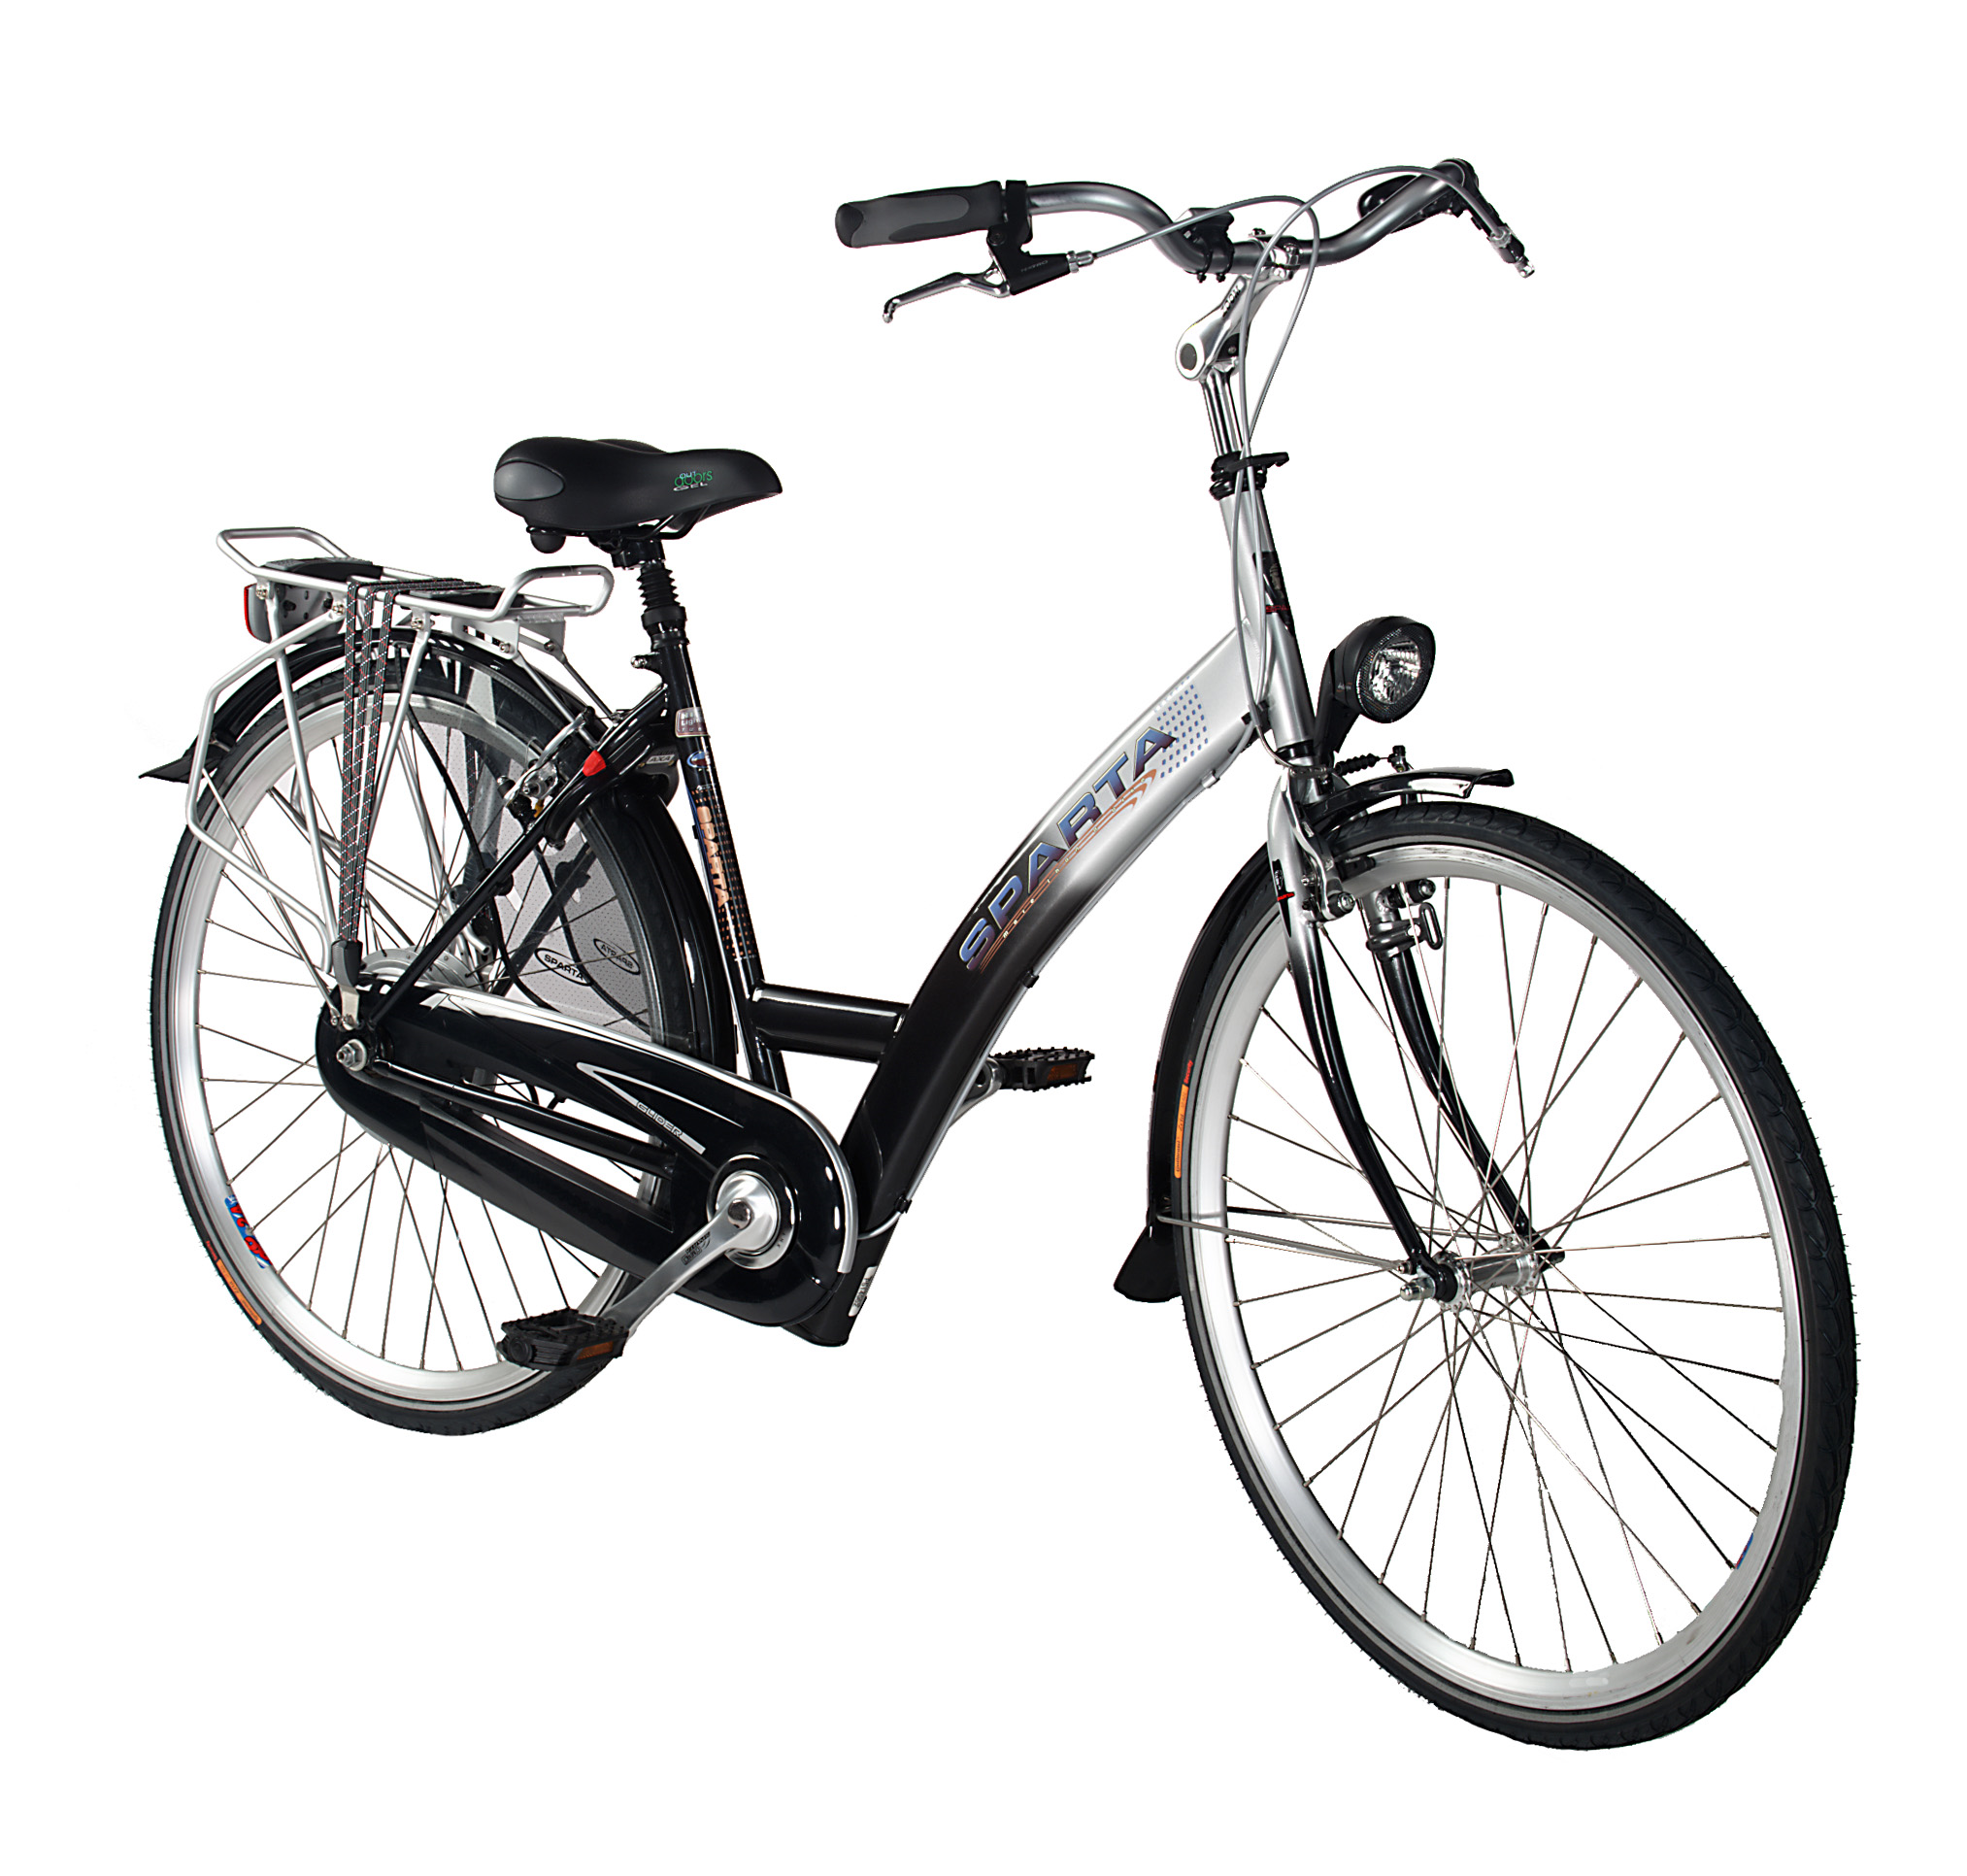 The inventors of the e-bike of Sparta: The Sparta Ion